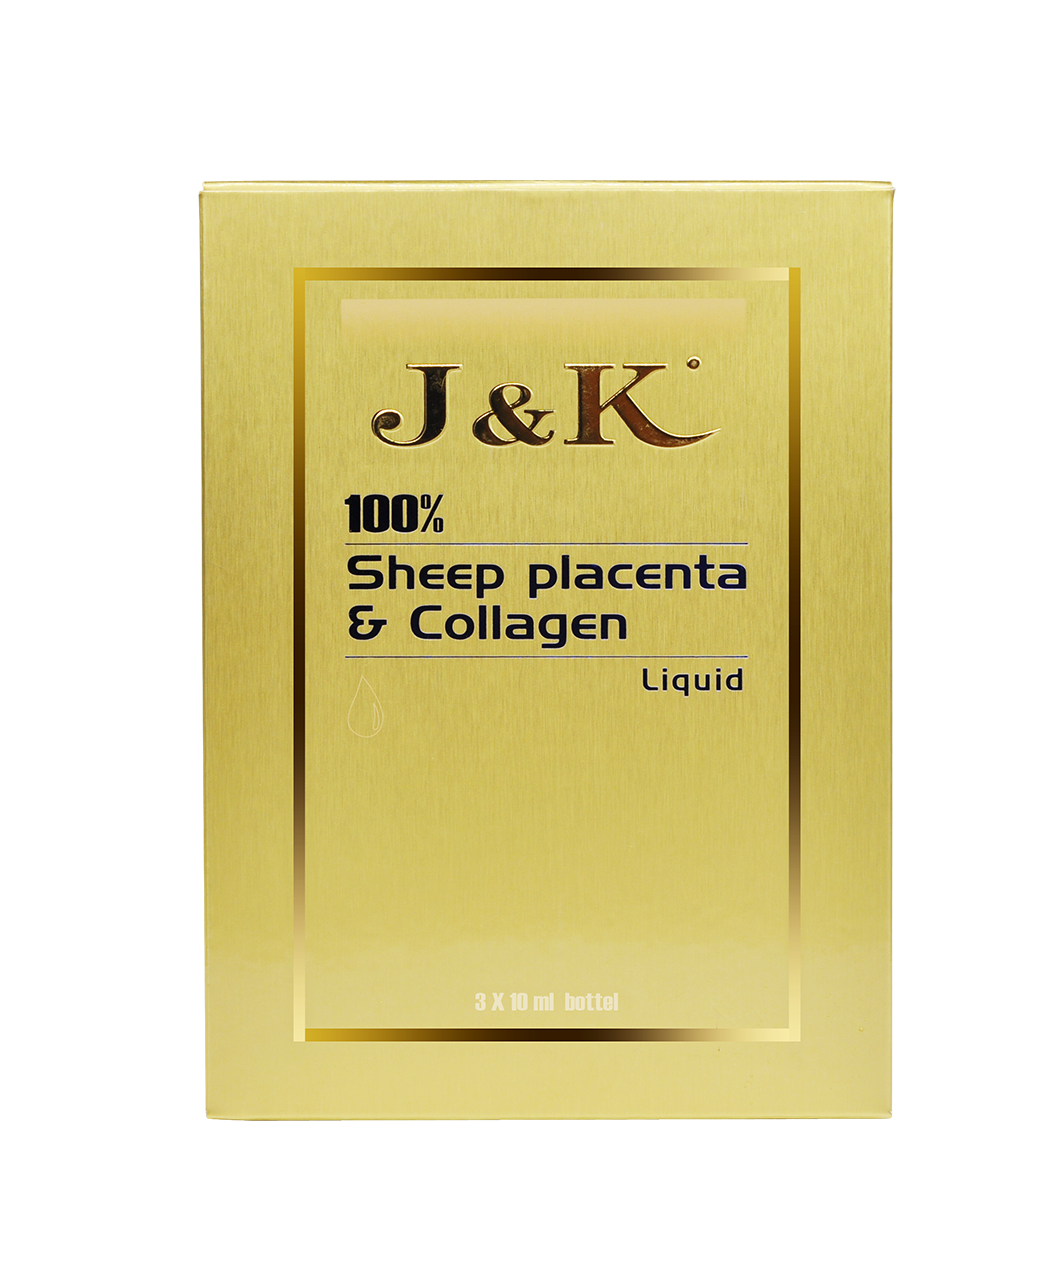 J&K 100%Sheep placenta & collagen liquid